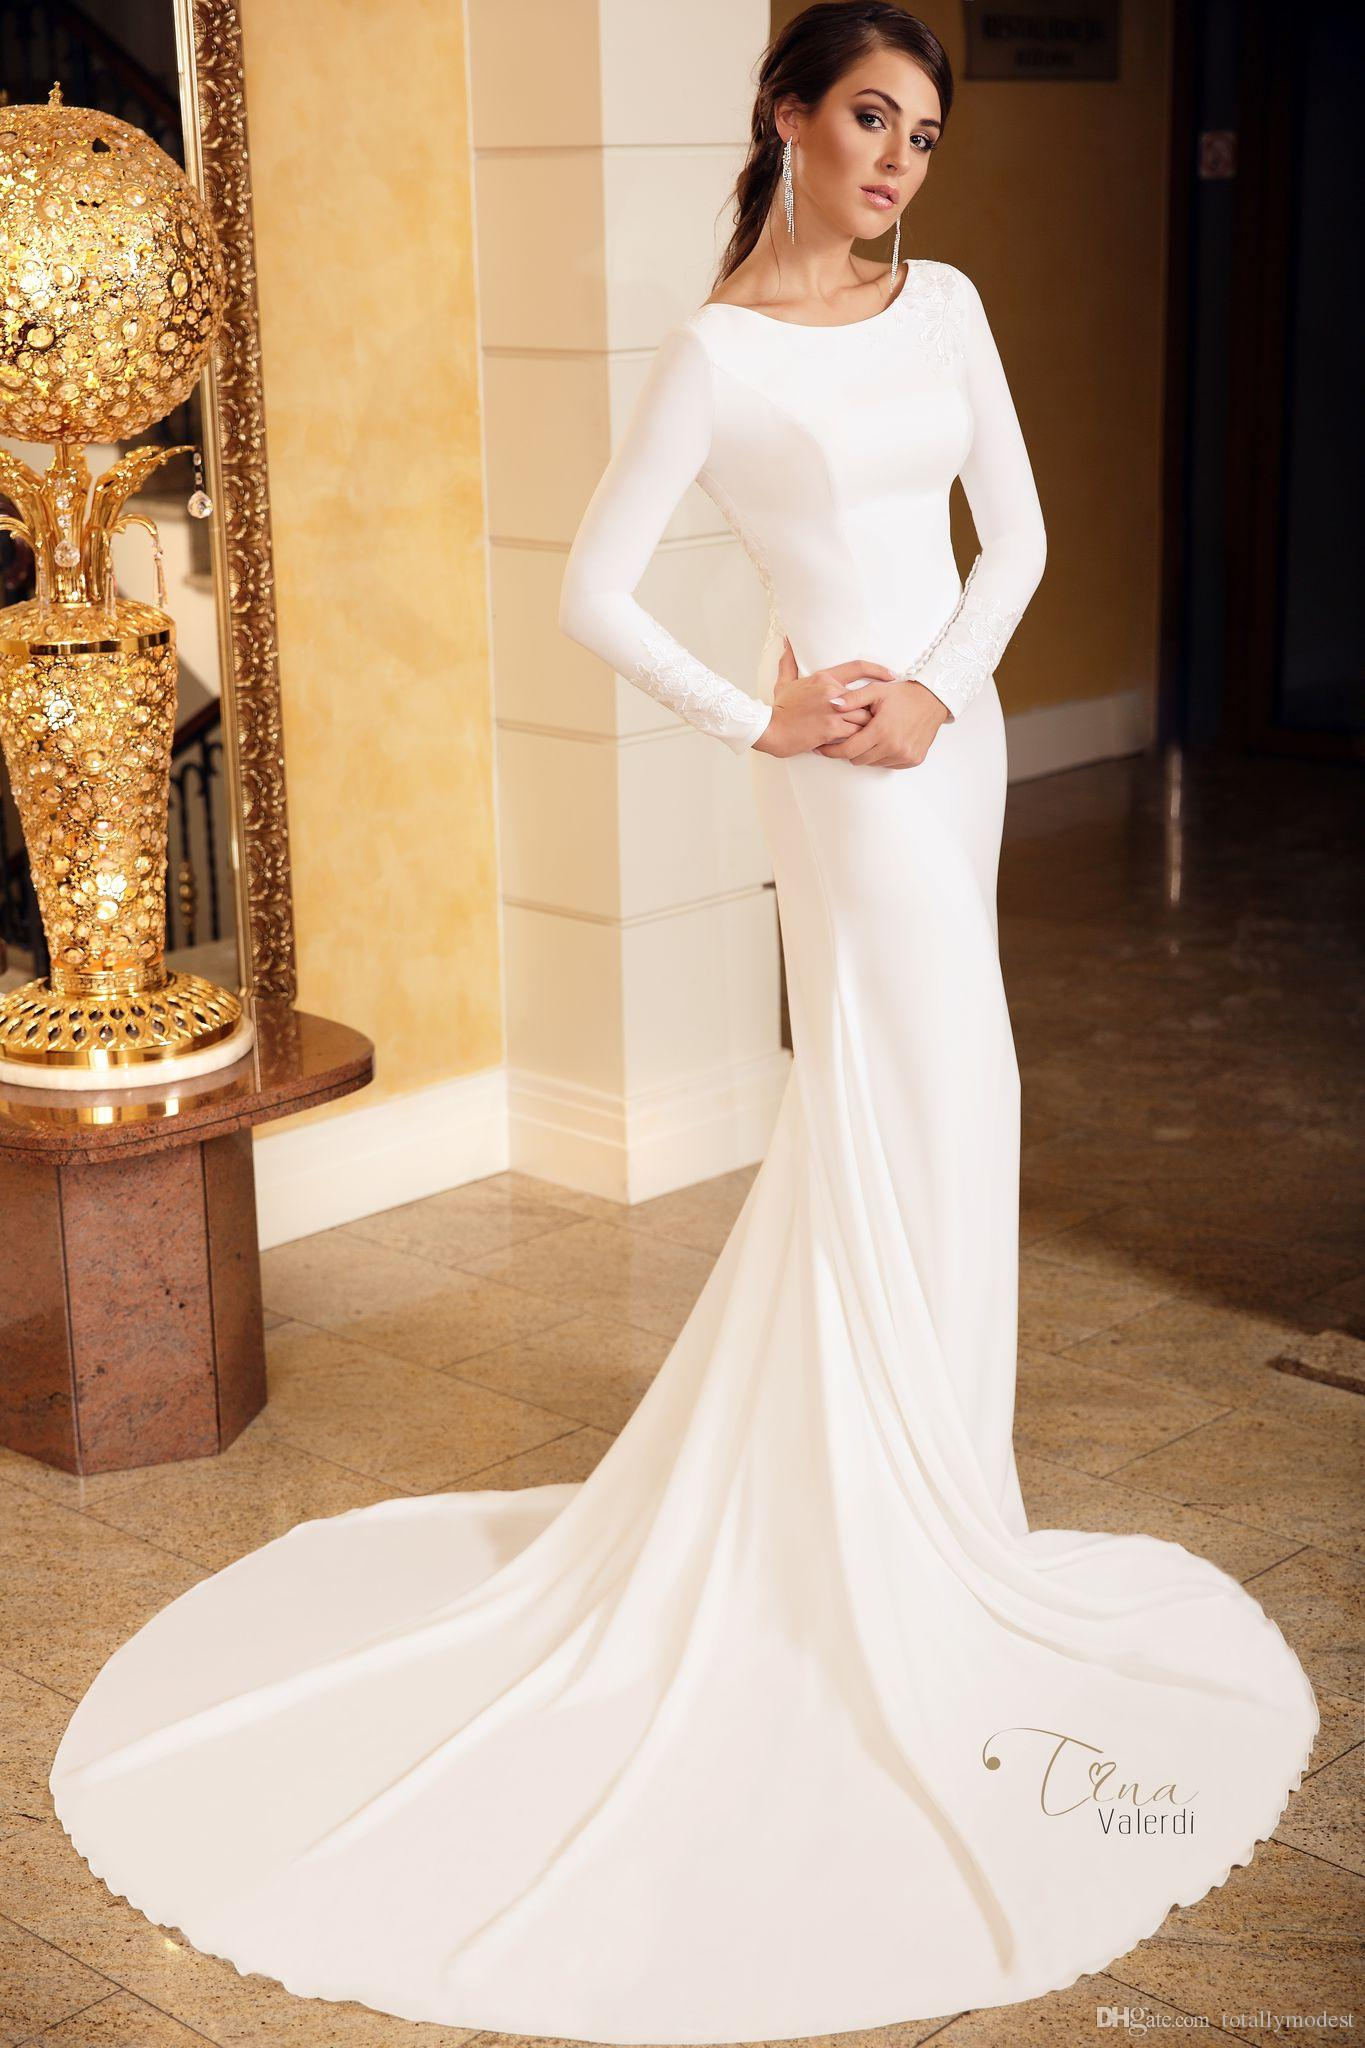 a9e5cc5f8da7e 2018 Crepe Mermaid Modest Wedding Dresses With Long Sleeves Jewel Neck  Sheer Lace Back Simple Country Boho Modest Bridal Gown New Arrival Short  Wedding ...